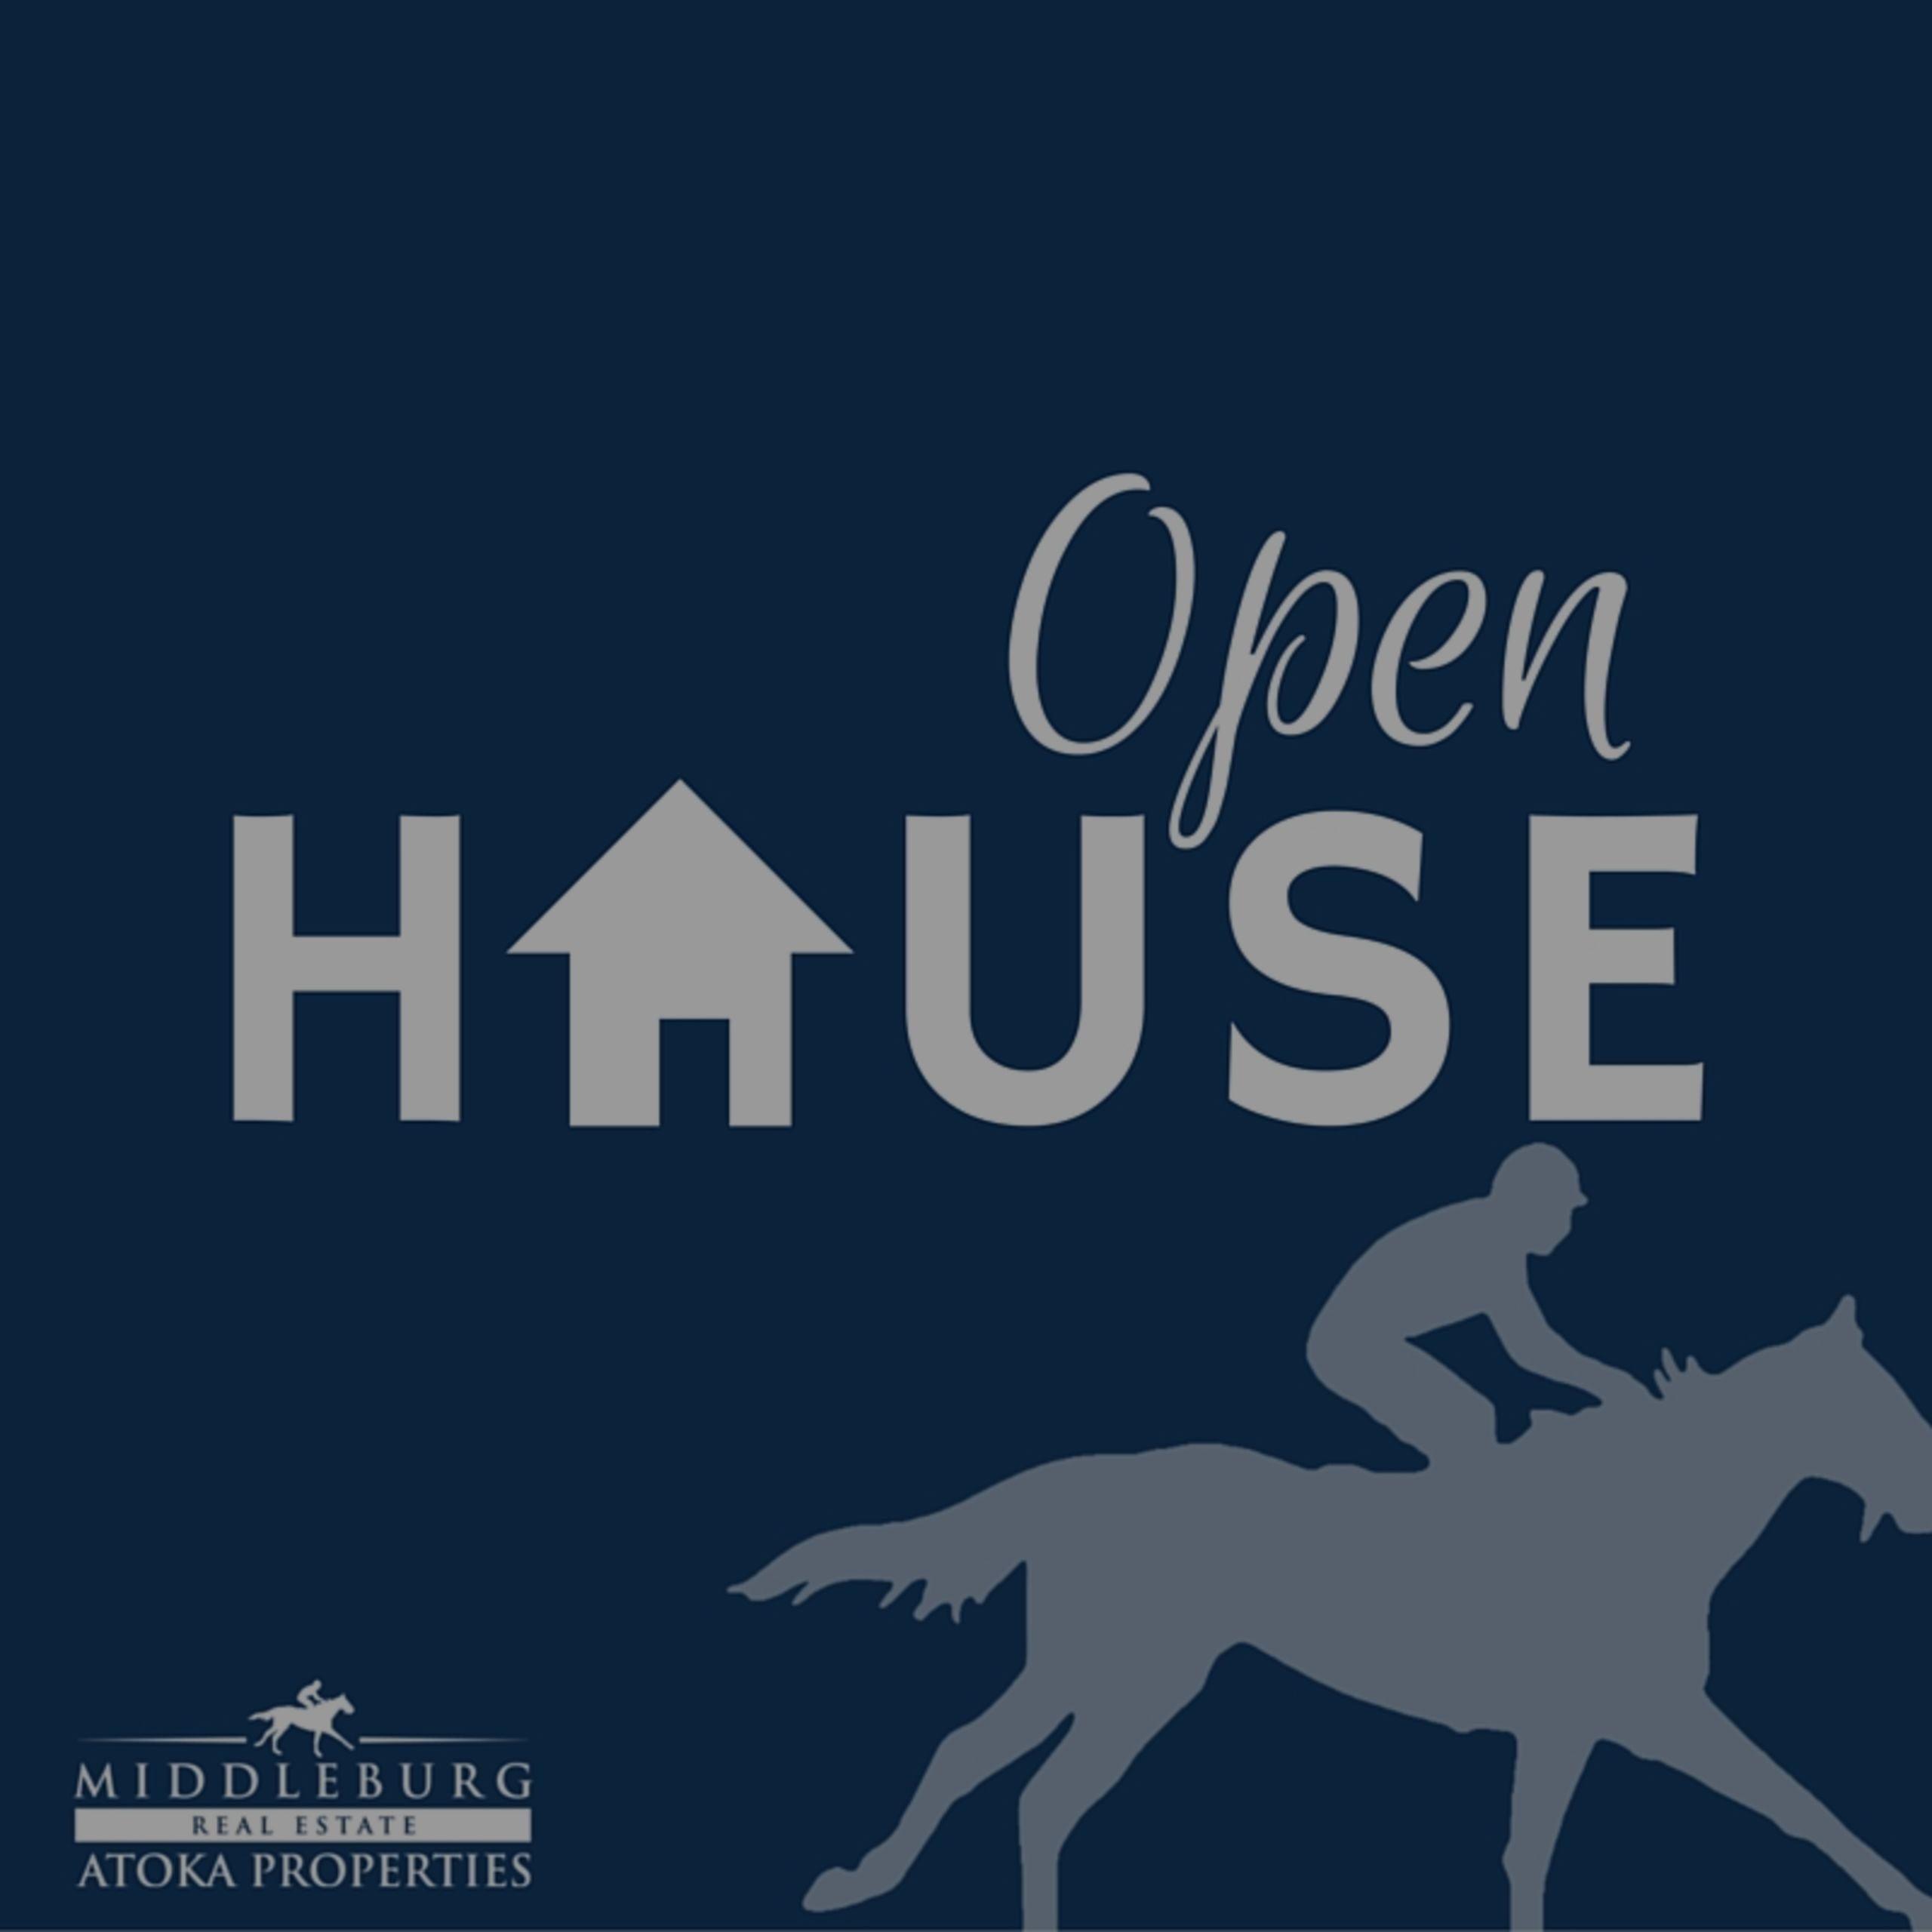 3 Open Houses in Ashburn, Purcellville, Round Hill   11/6, 1-4PM